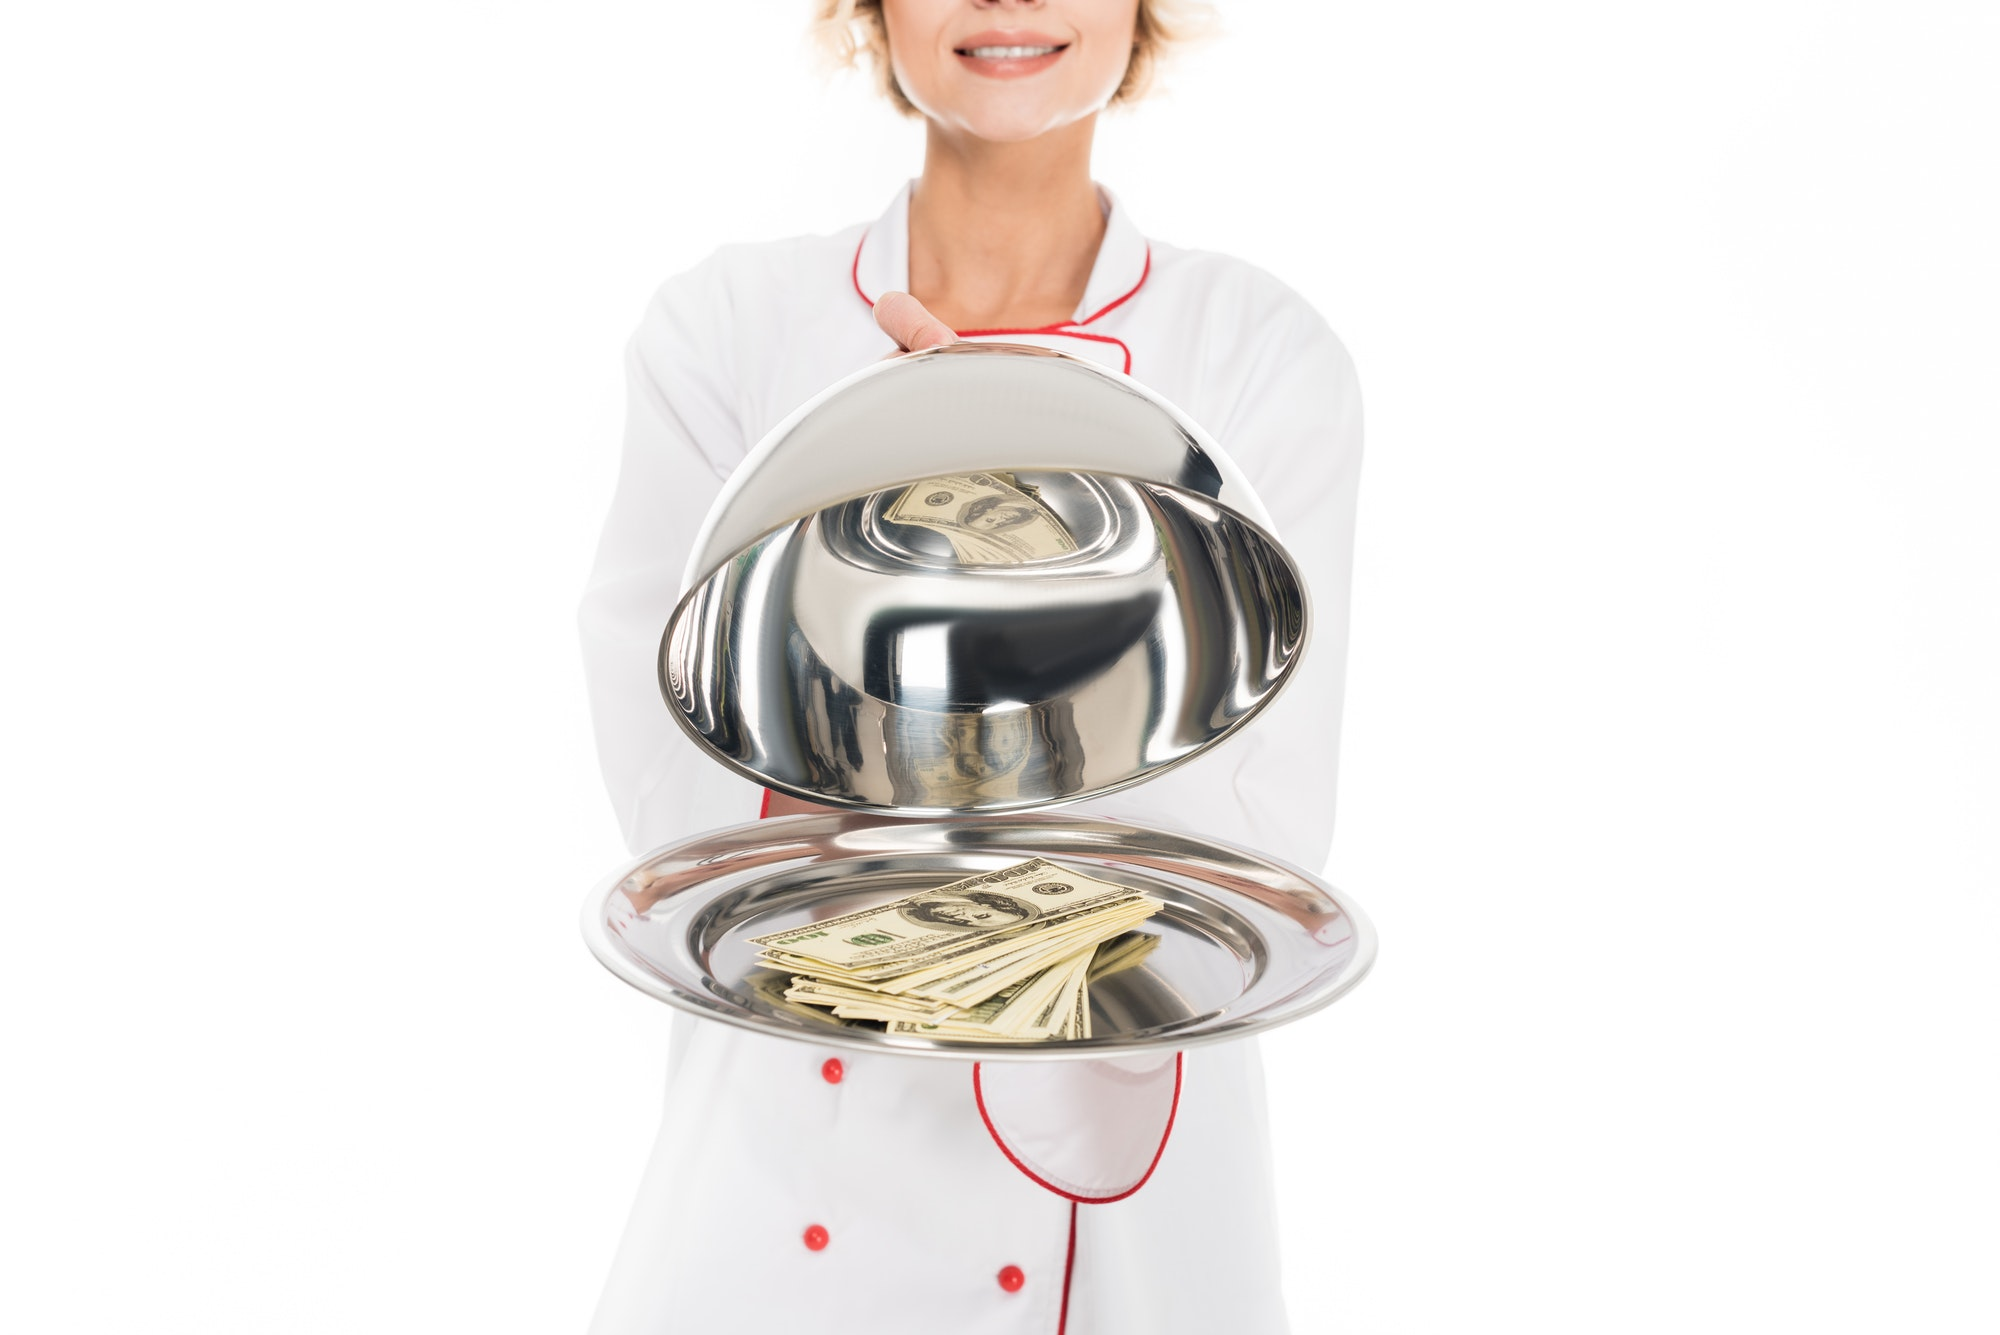 cropped shot of chef holding serving tray with money in hands isolated on white